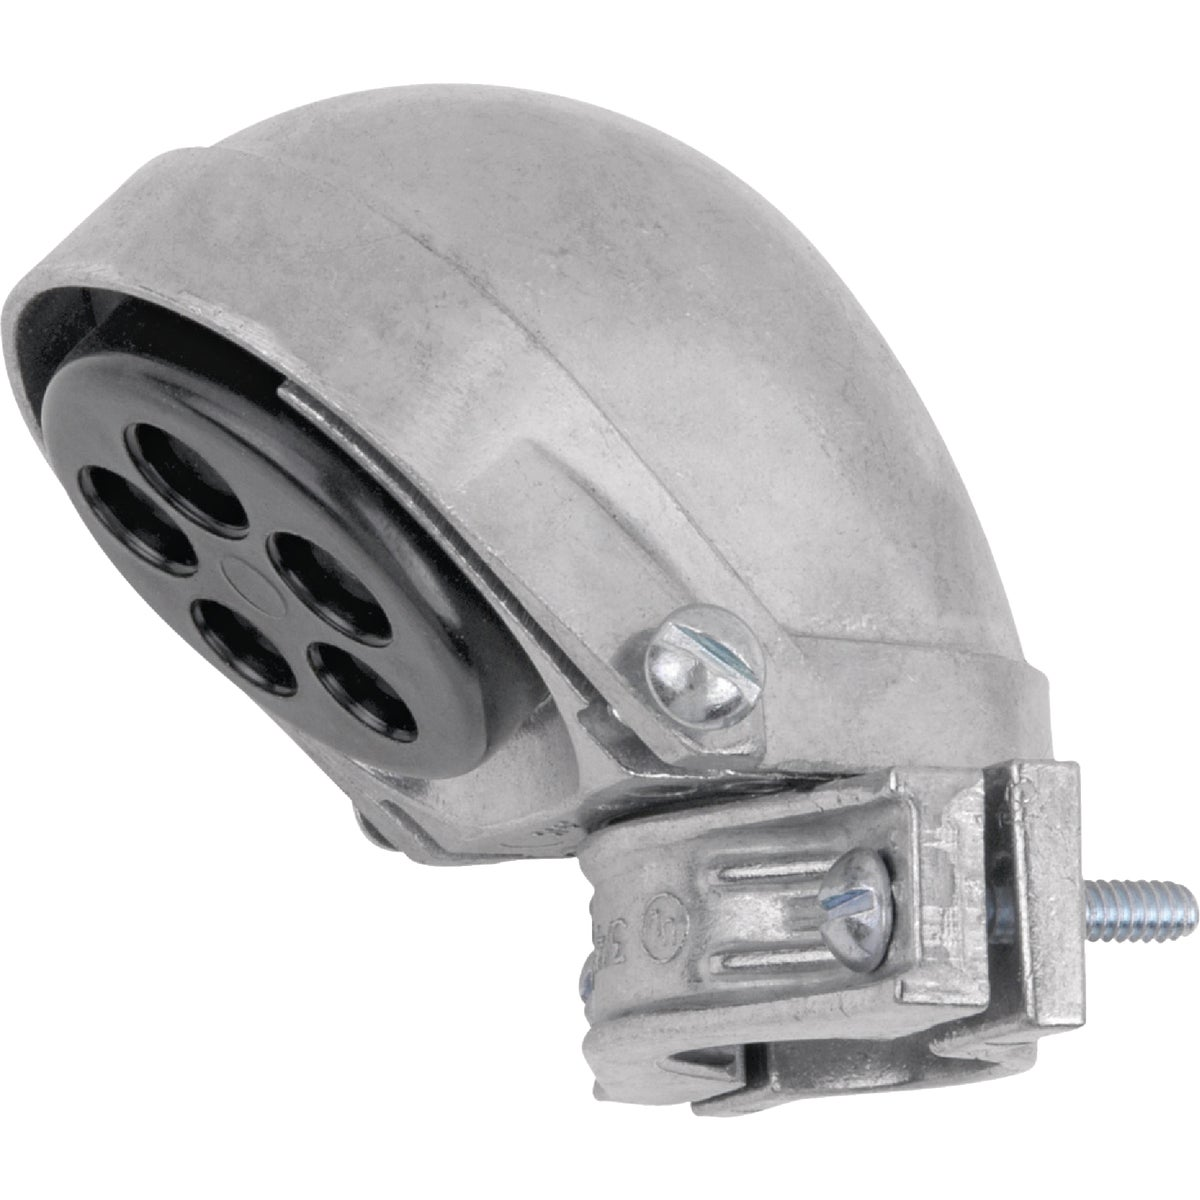 "3/4"" ENTRANCE CAP - SH1021 by Thomas & Betts"